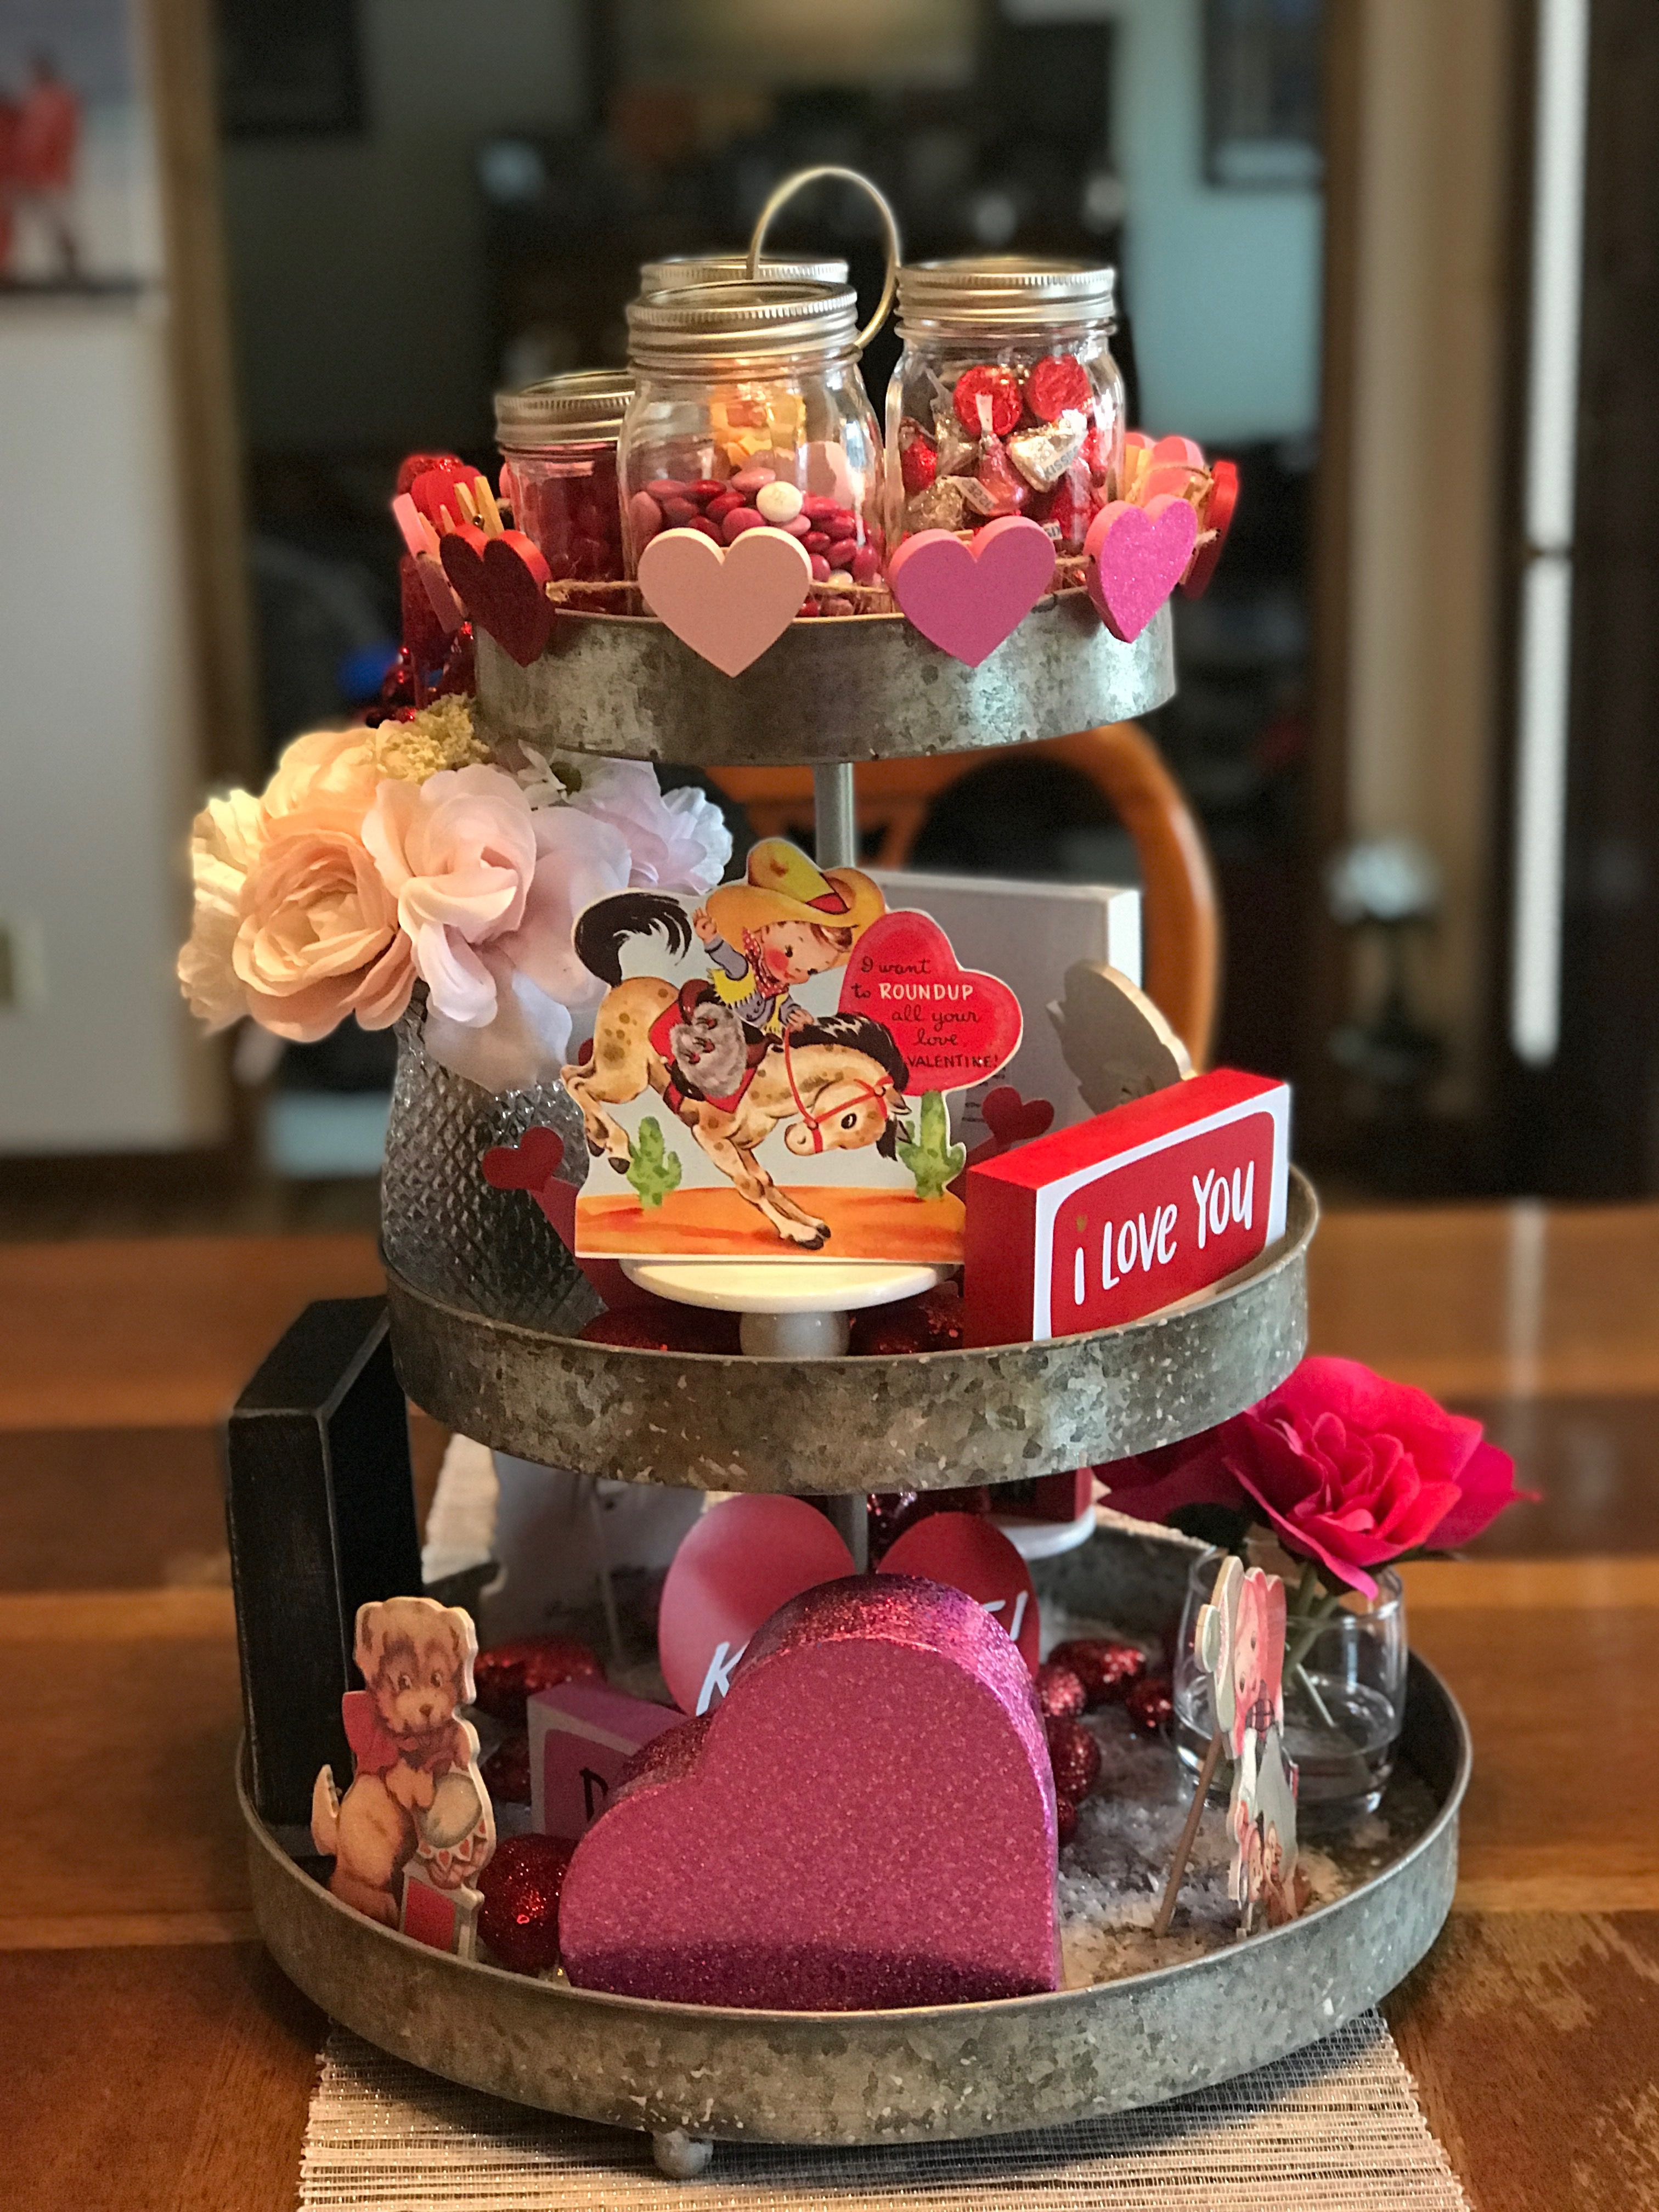 More Valentines tiered tray